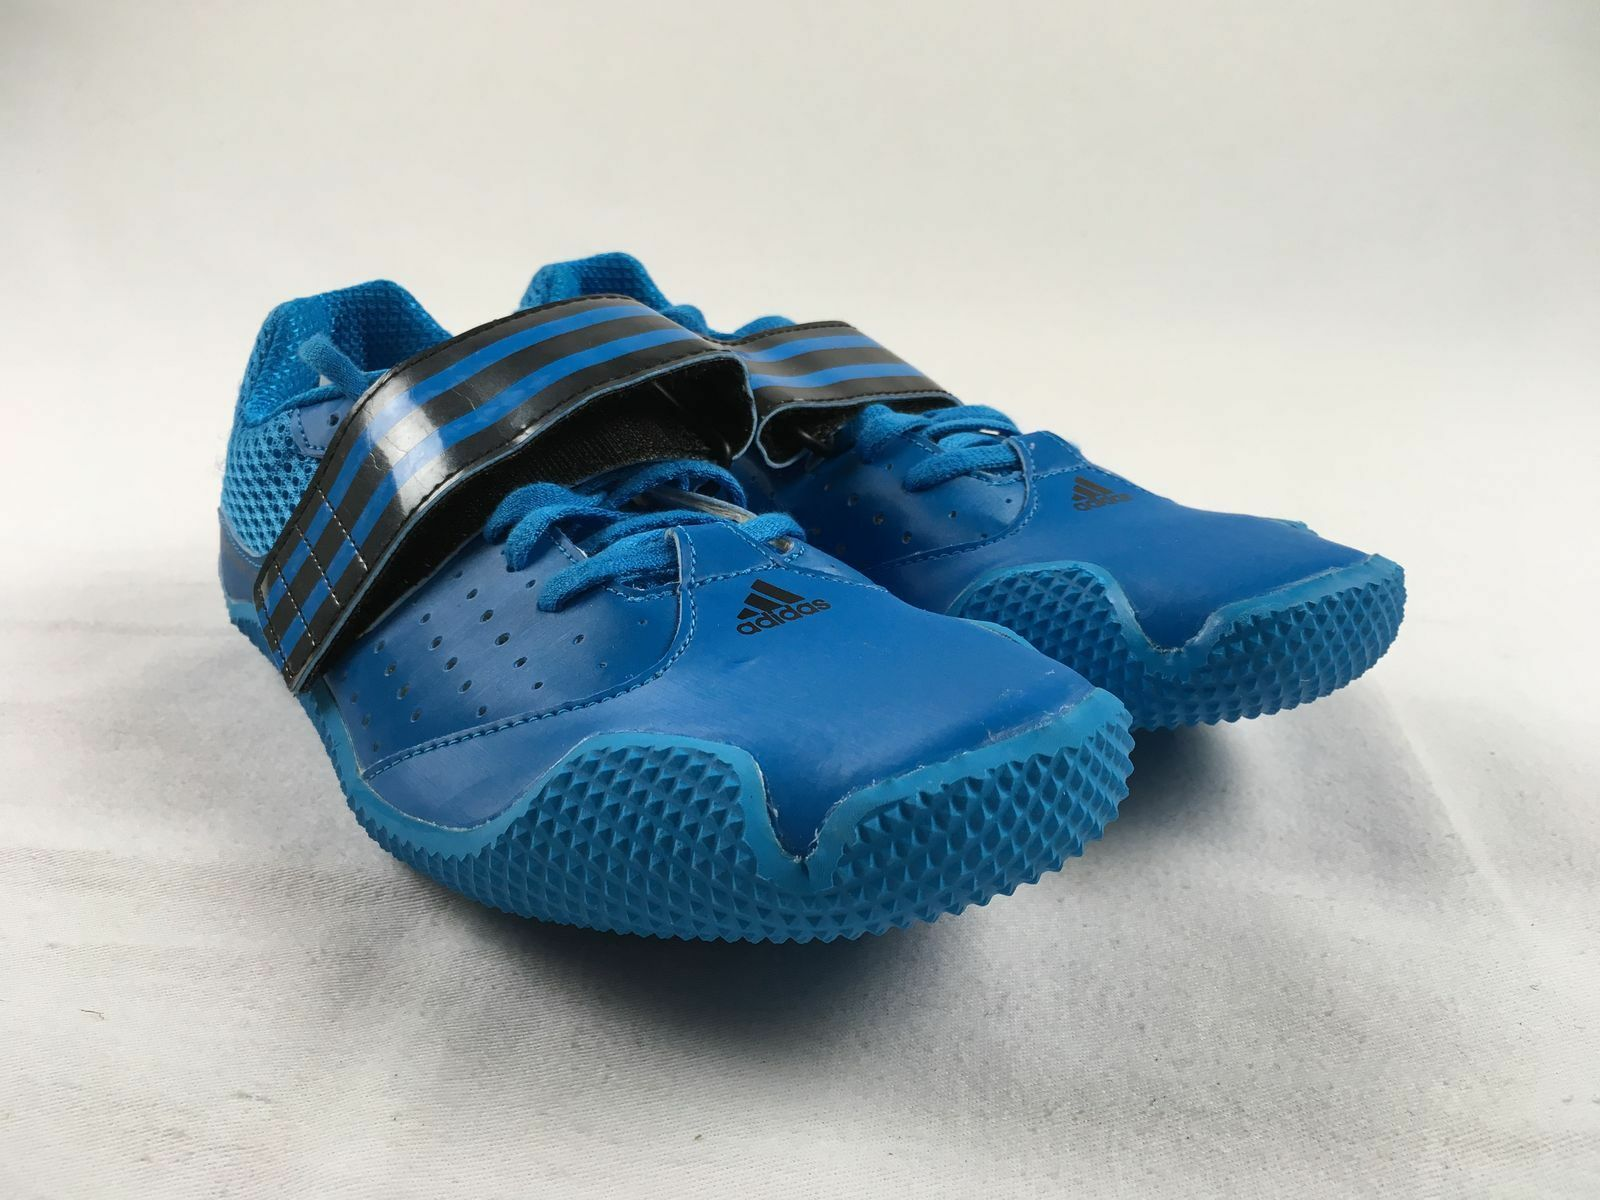 NEW adidas Throwstar All-Around - bluee Cleats (Men's Multiple Sizes)